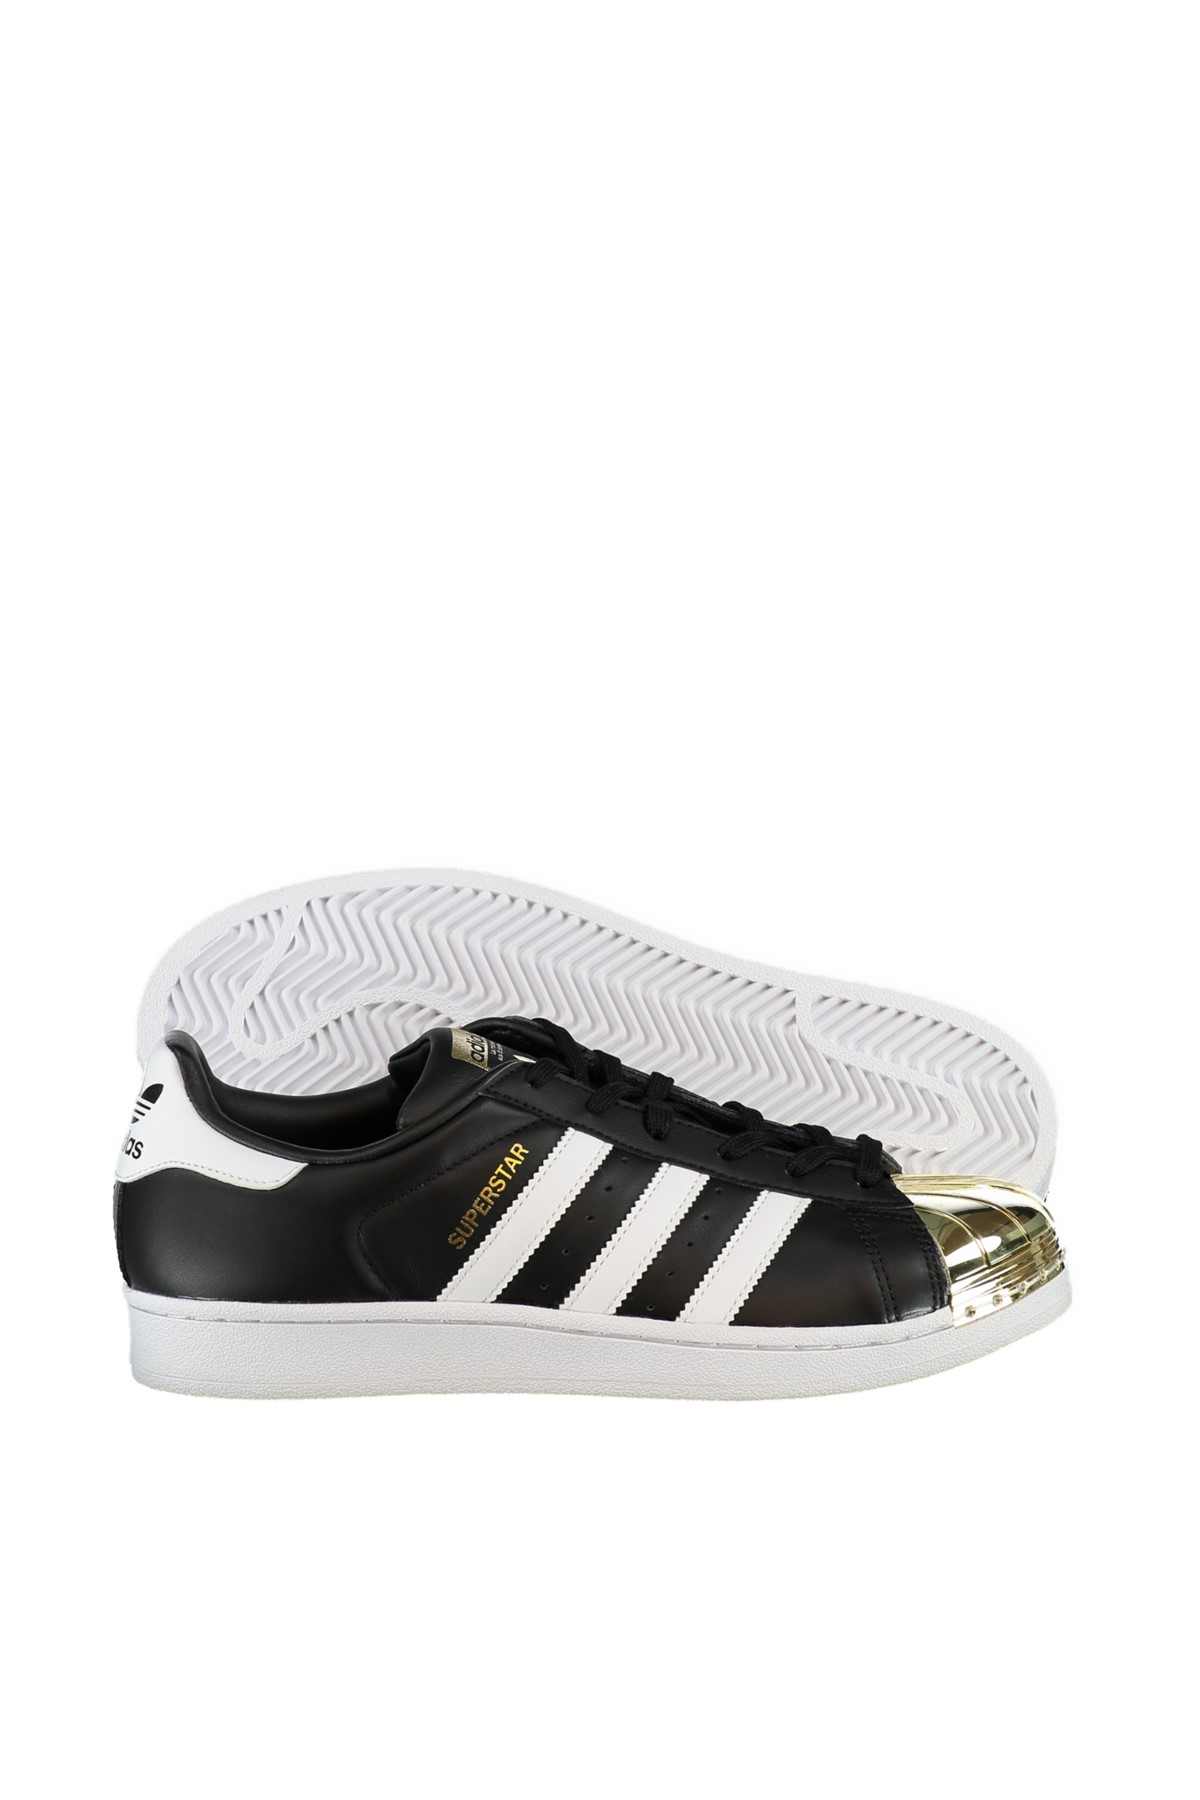 Adidas Unisex Originals Ayakkabı – Superstar Metal Toe Bb5115 – 499.0 TL